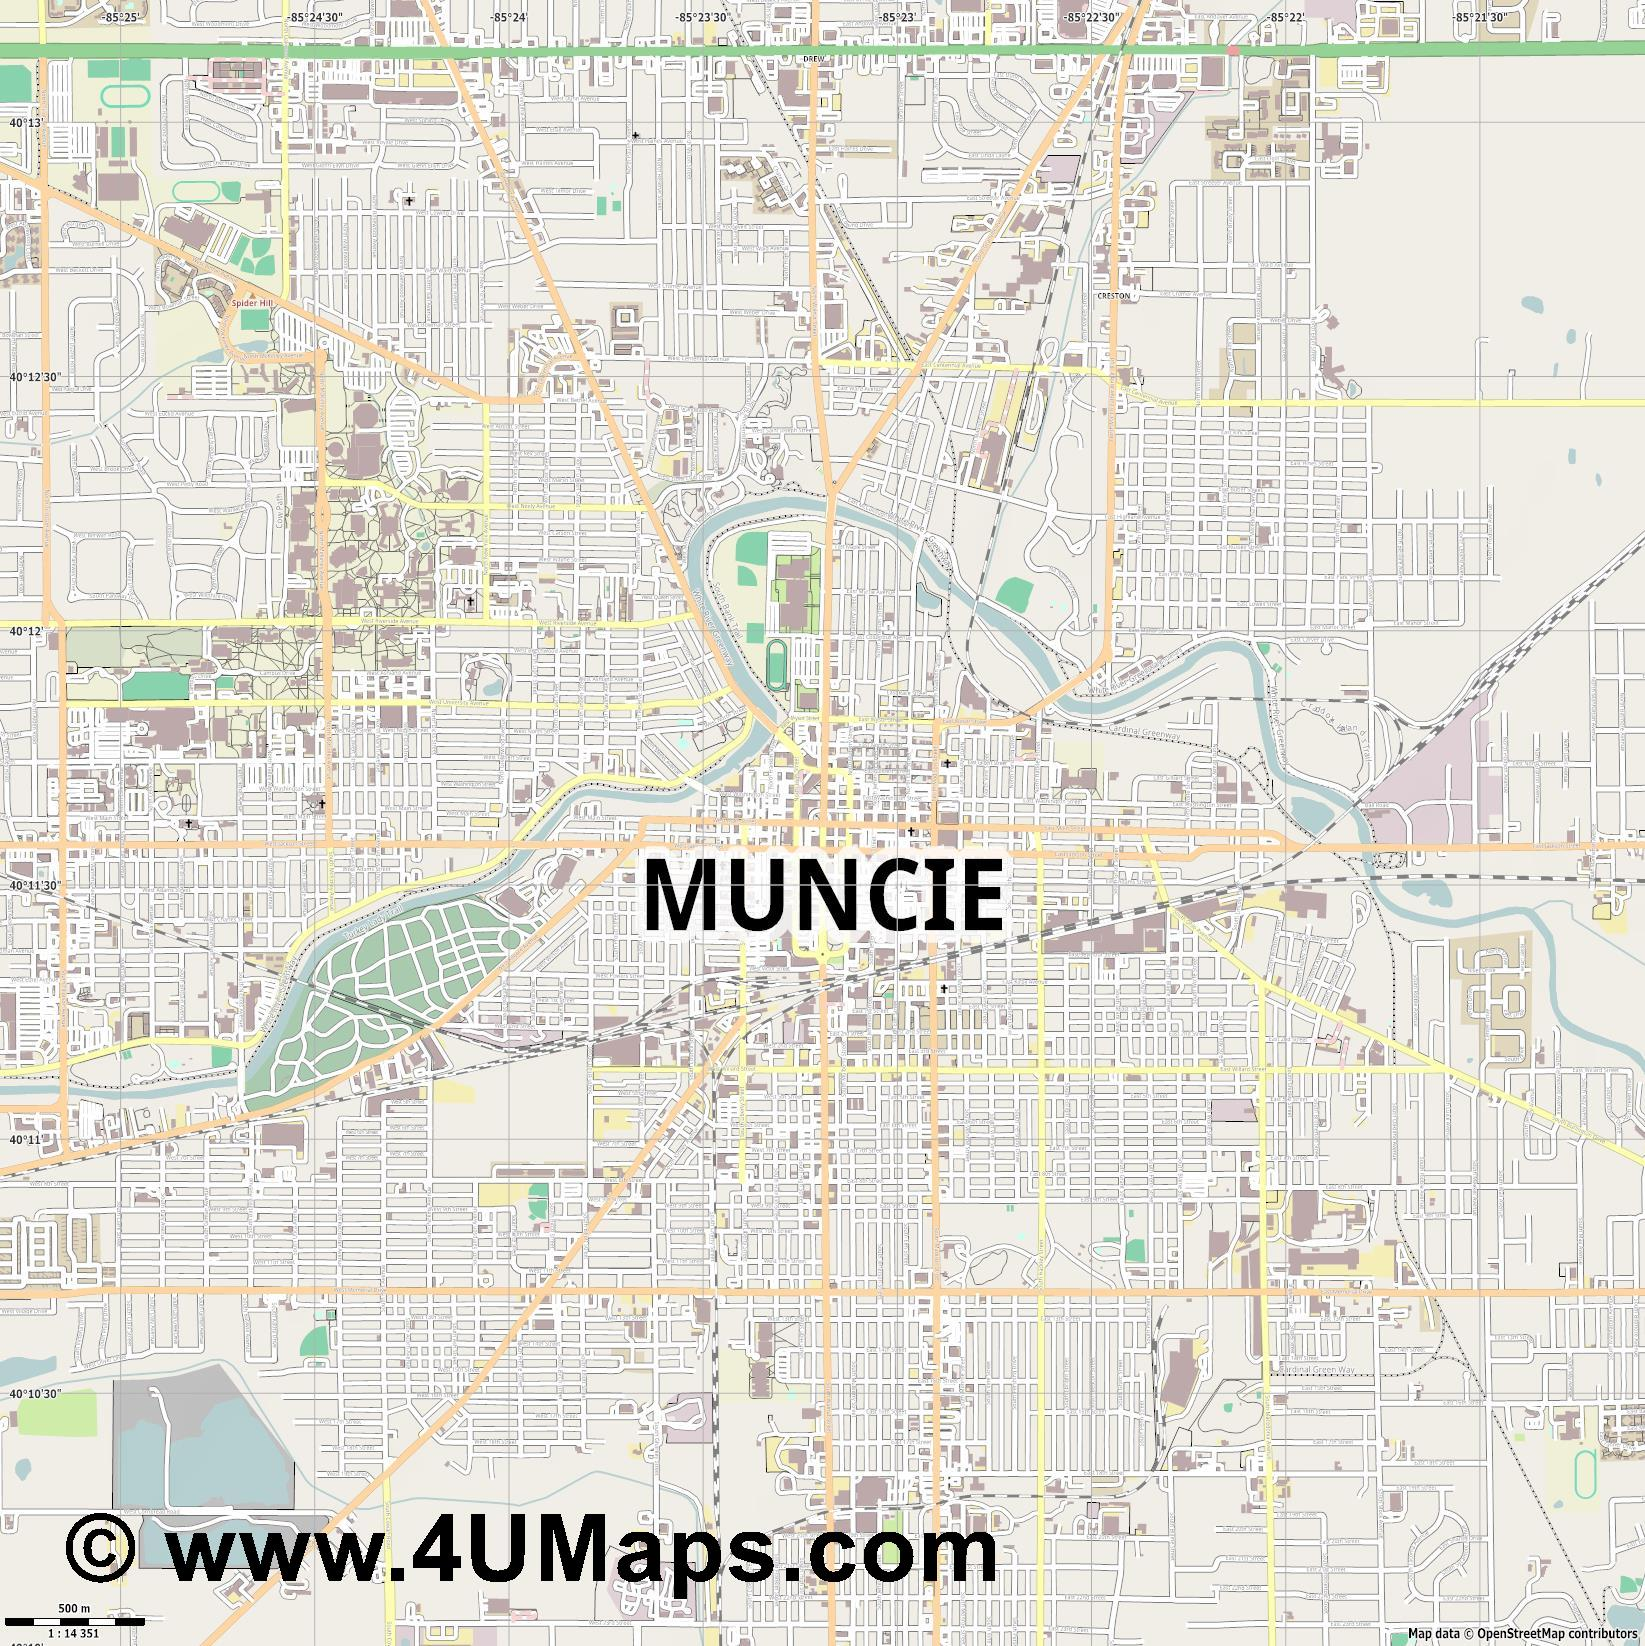 Muncie  jpg ultra high detail preview vector city map